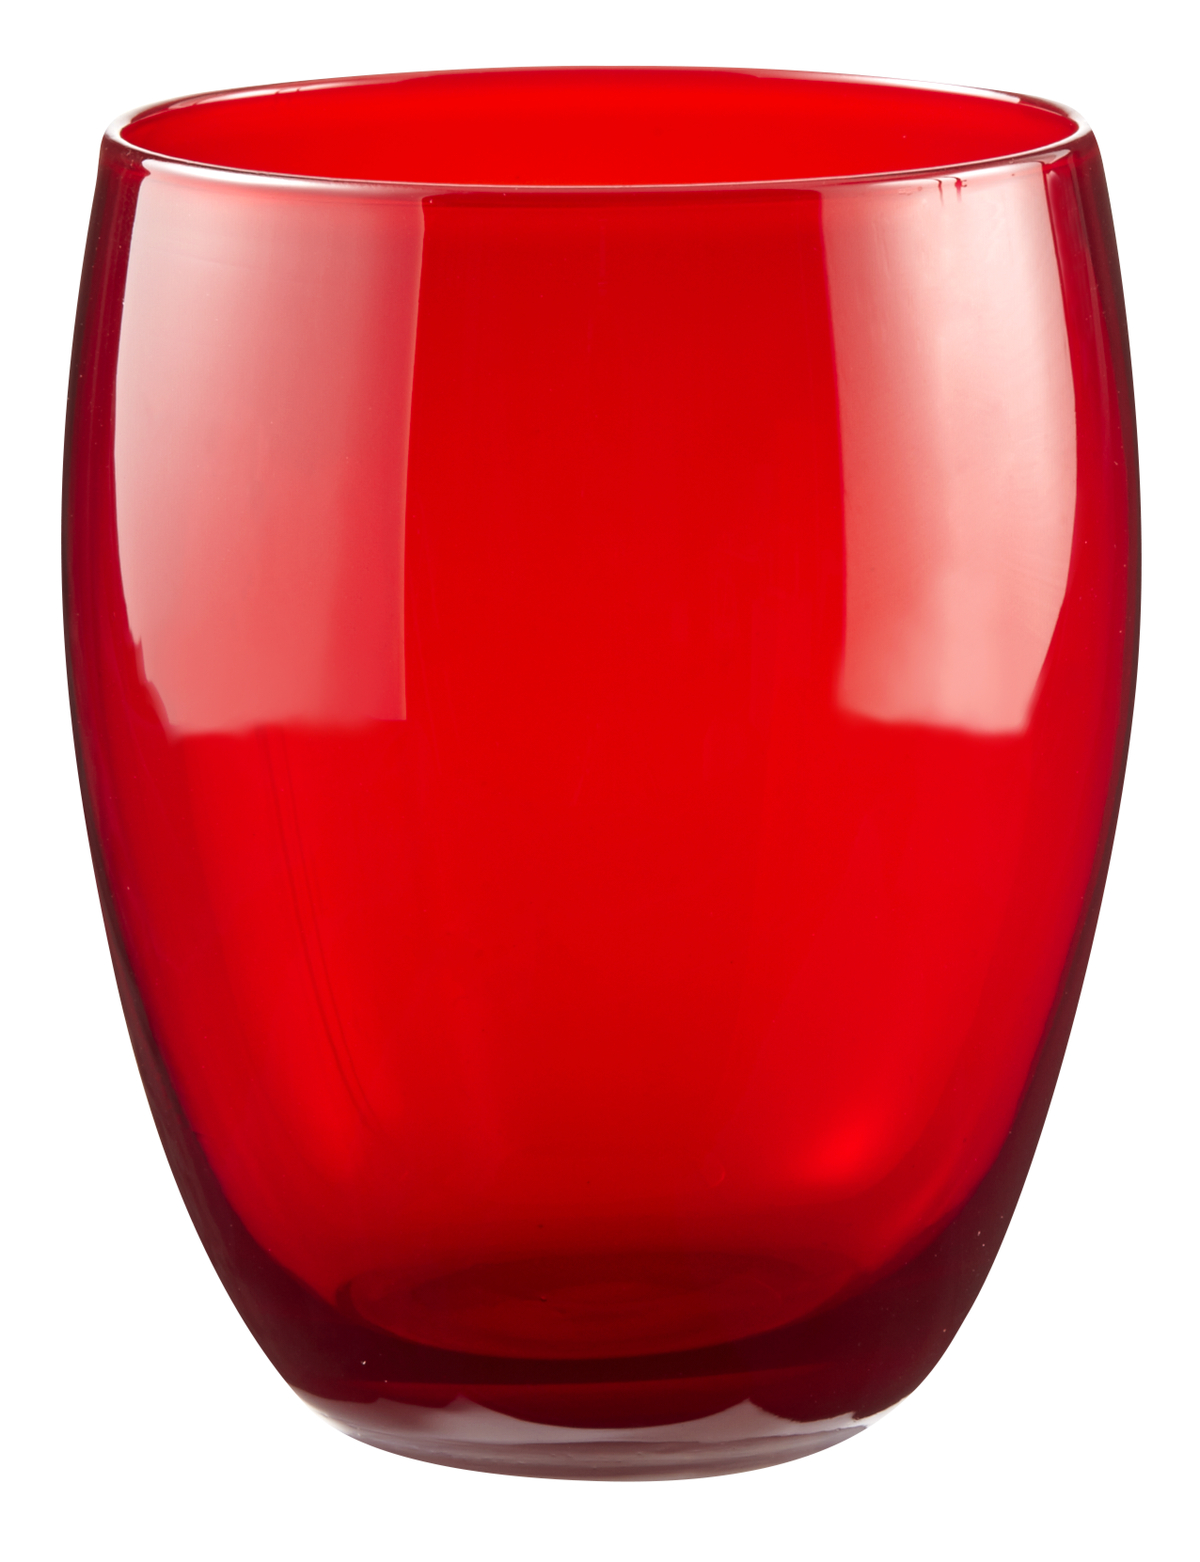 Gobelet forme basse rouge 30 cl Baya Essentials Glassware